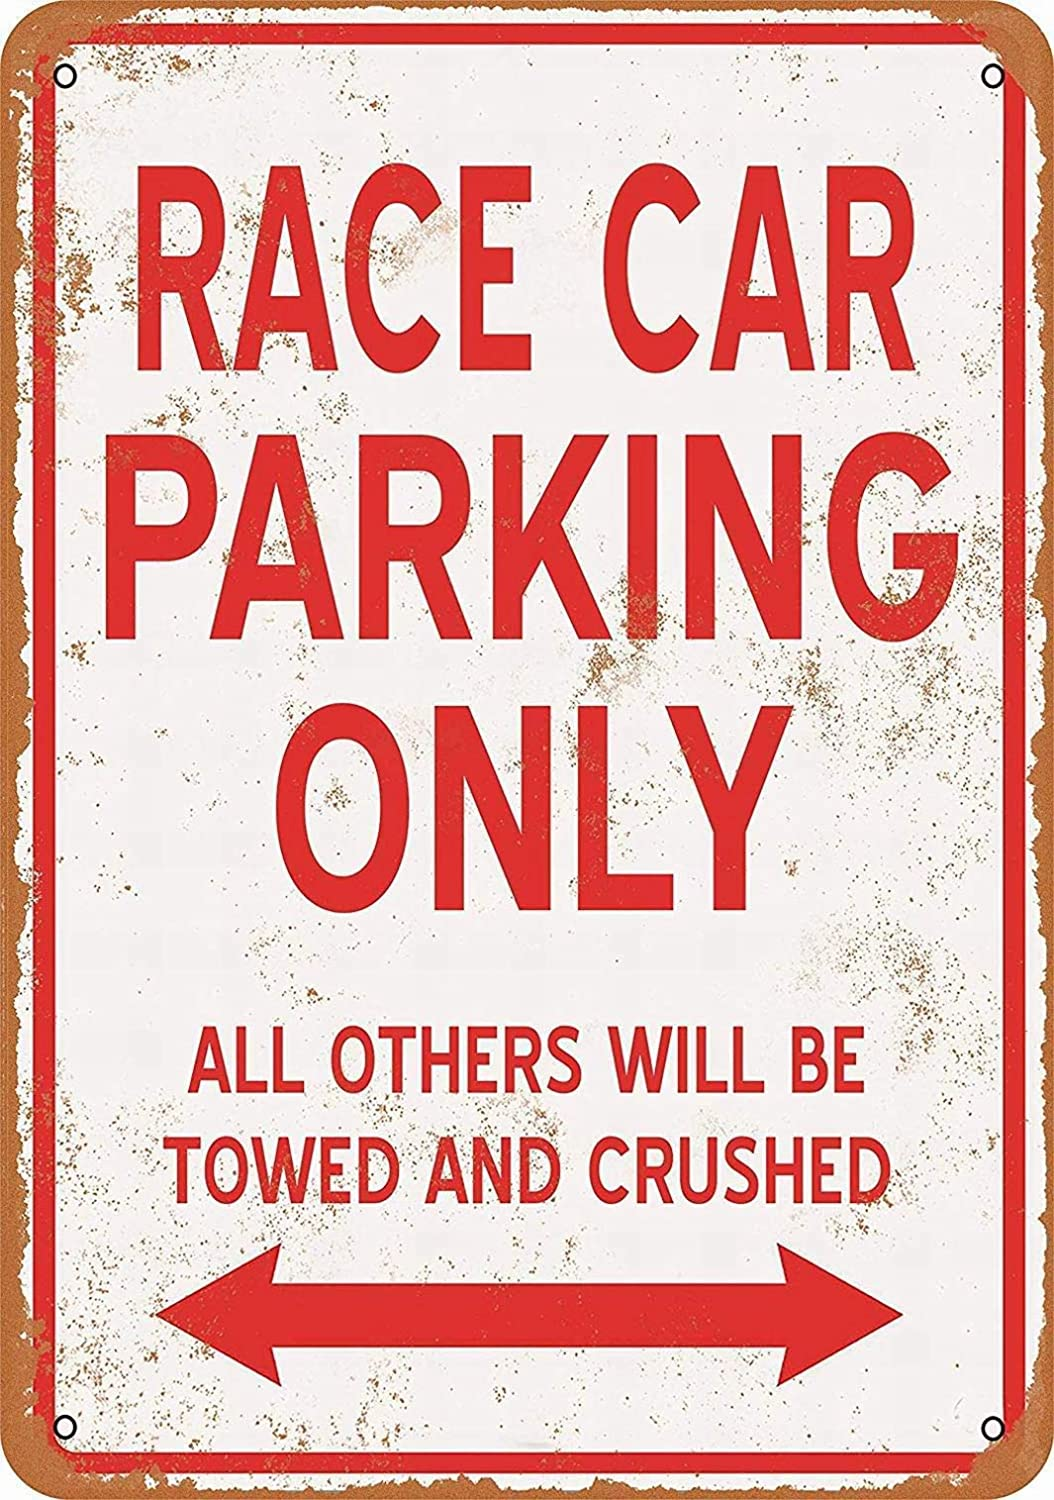 SmartCows Retro Metal Sign 12 x 8 Inches - Race CAR Parking ONLY - Vintage Wall Decor Home Decor